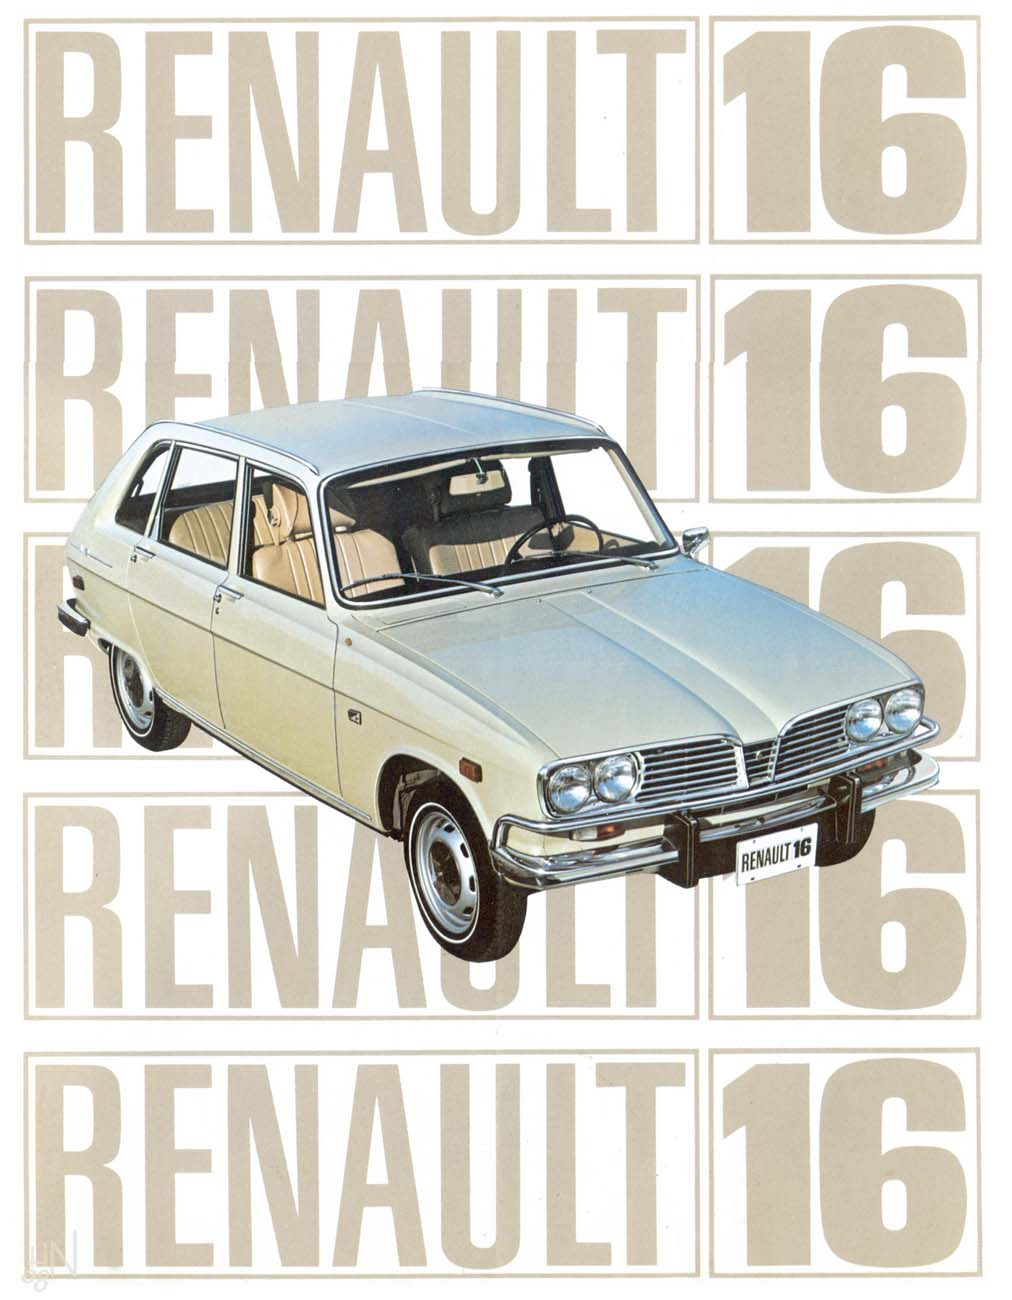 The Renault 16